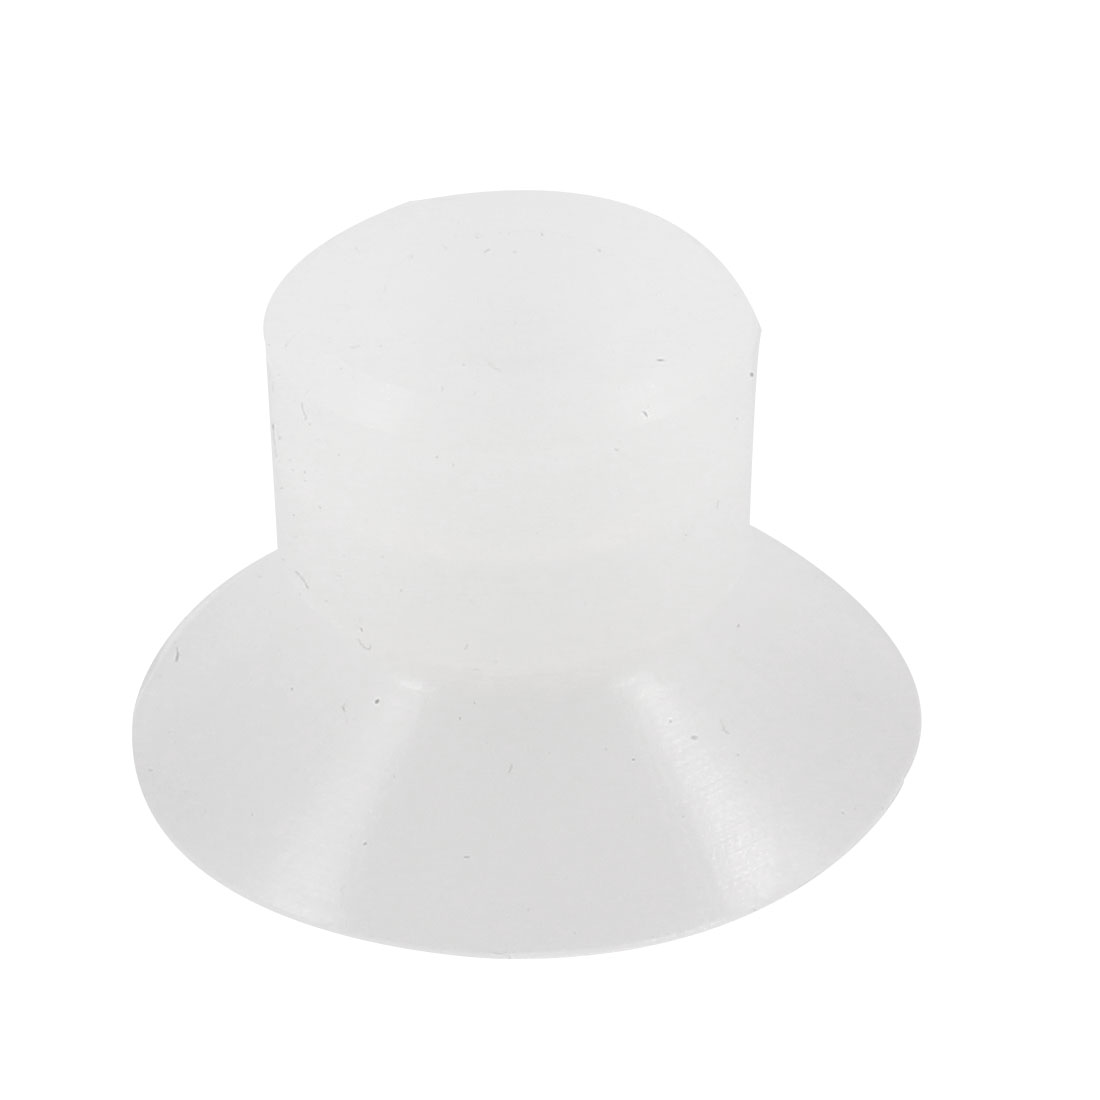 Vacuum Equipment Spare Part 21mm Dia Suction Cup Clear White